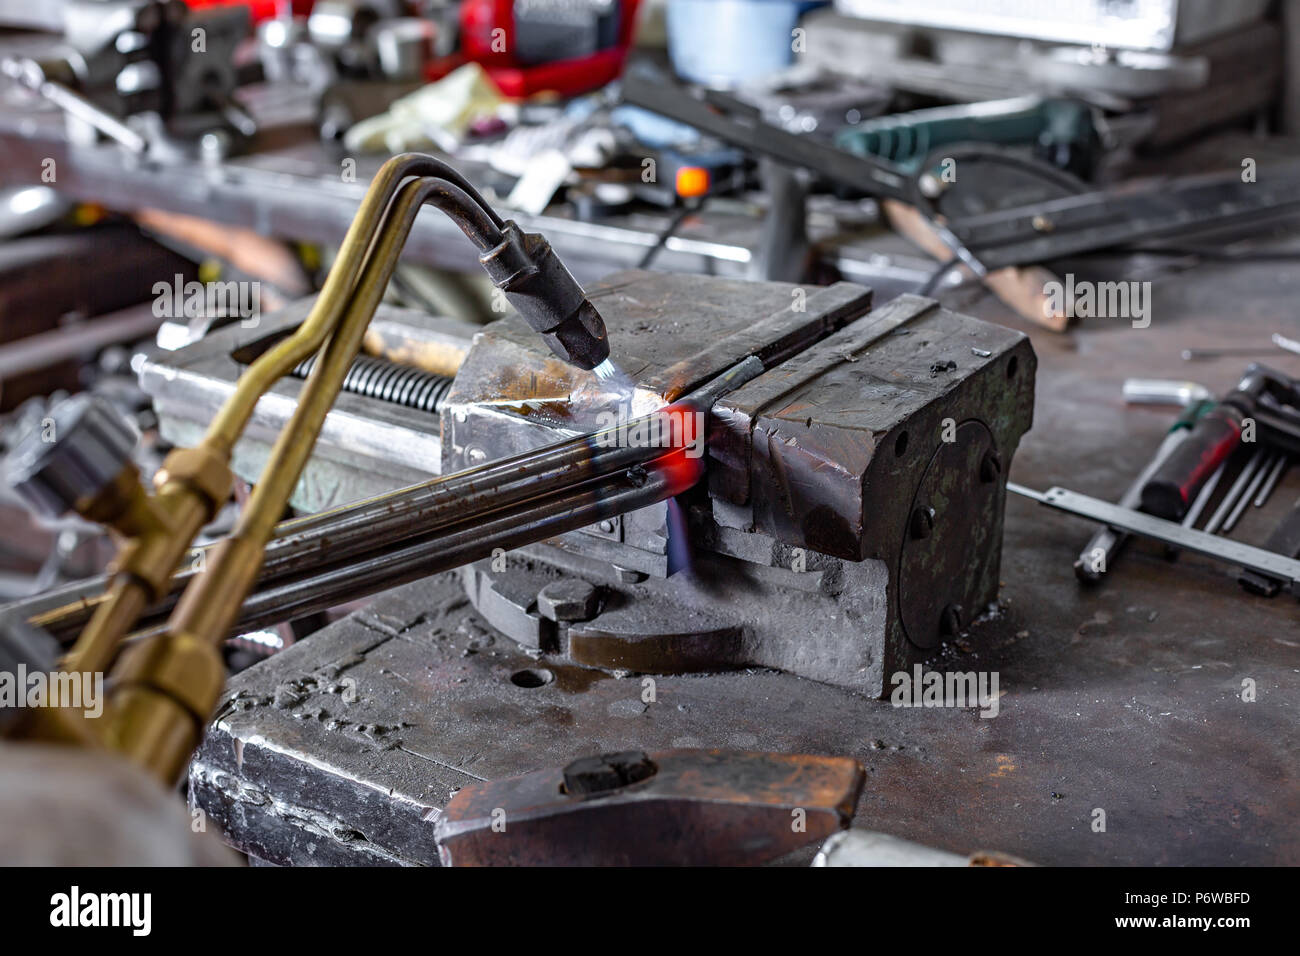 autogenous is going to cut a piece of metal welding. Stock Photo